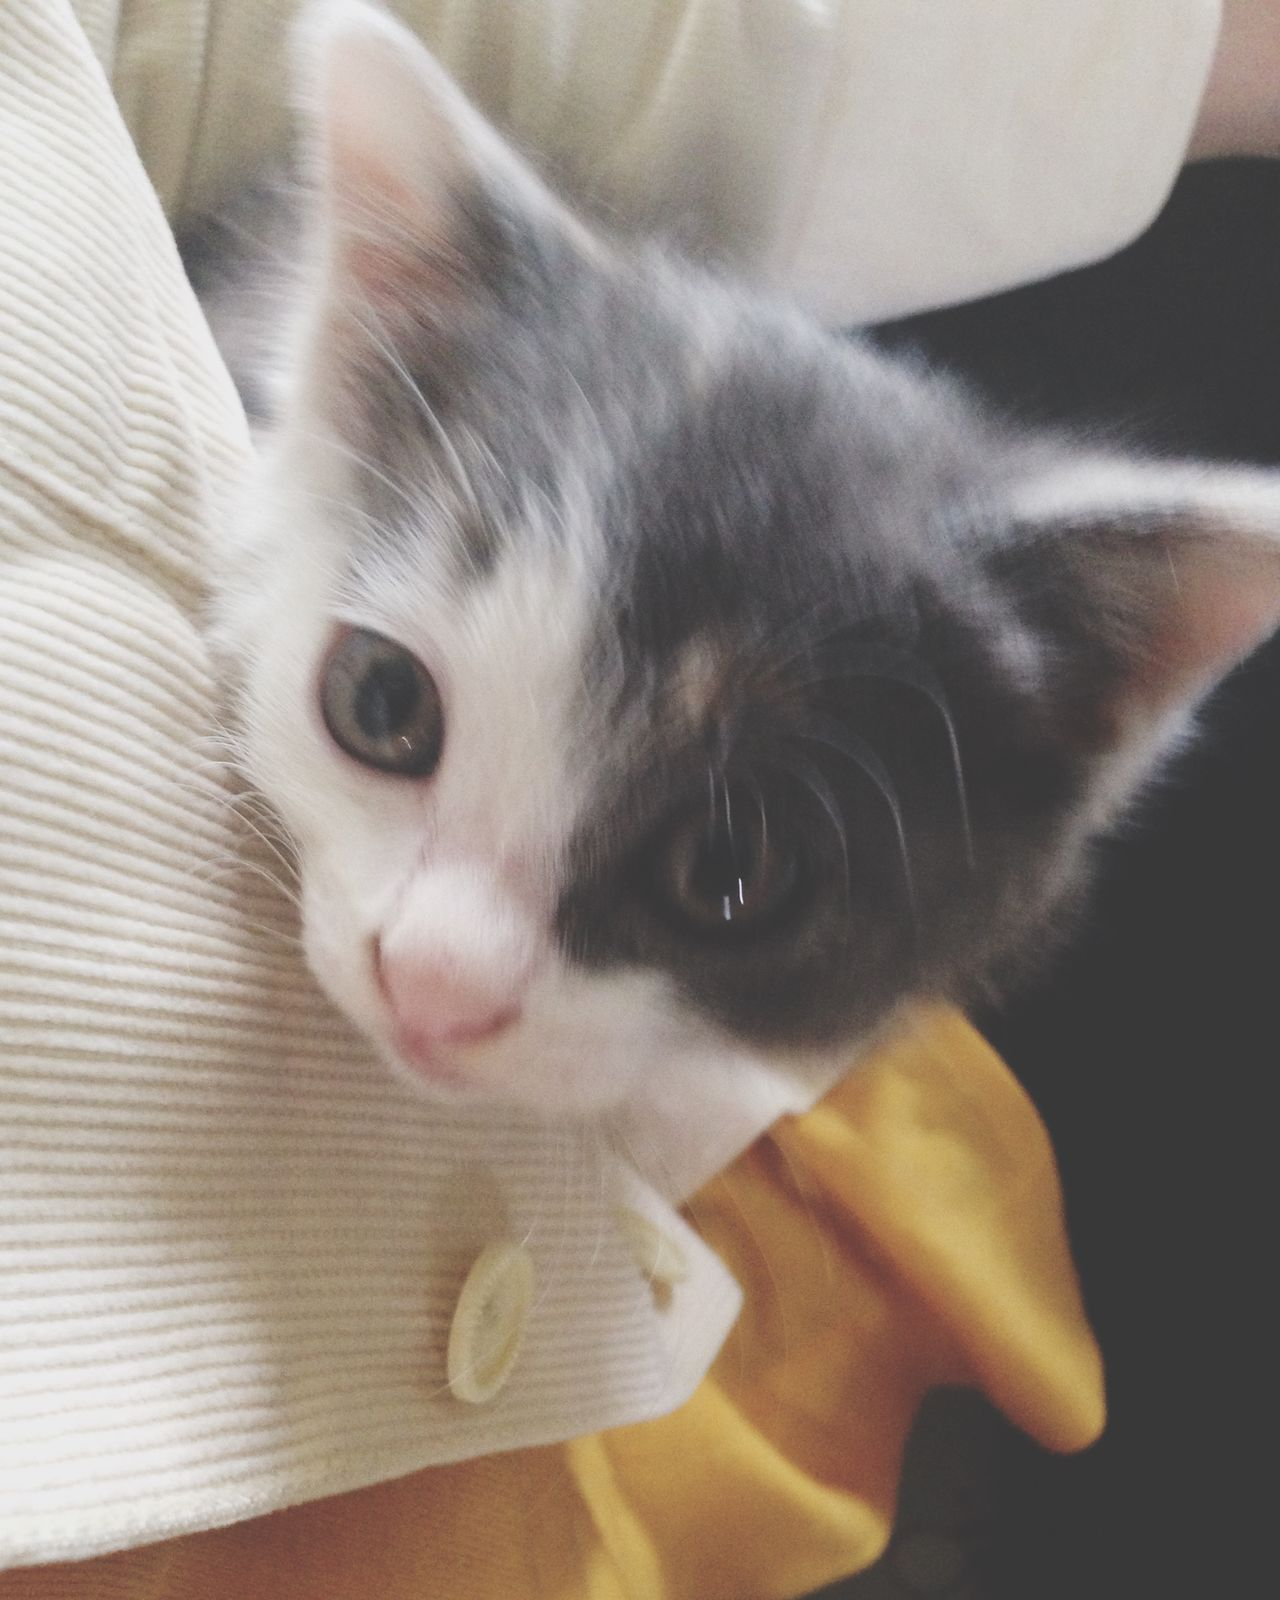 Cat Cat♡ Cat Lovers Babycat Babycat ❤ Cute Pets Cute Cute Cats Taking Photos Catsofinstagram Lovely Adorable Loveit